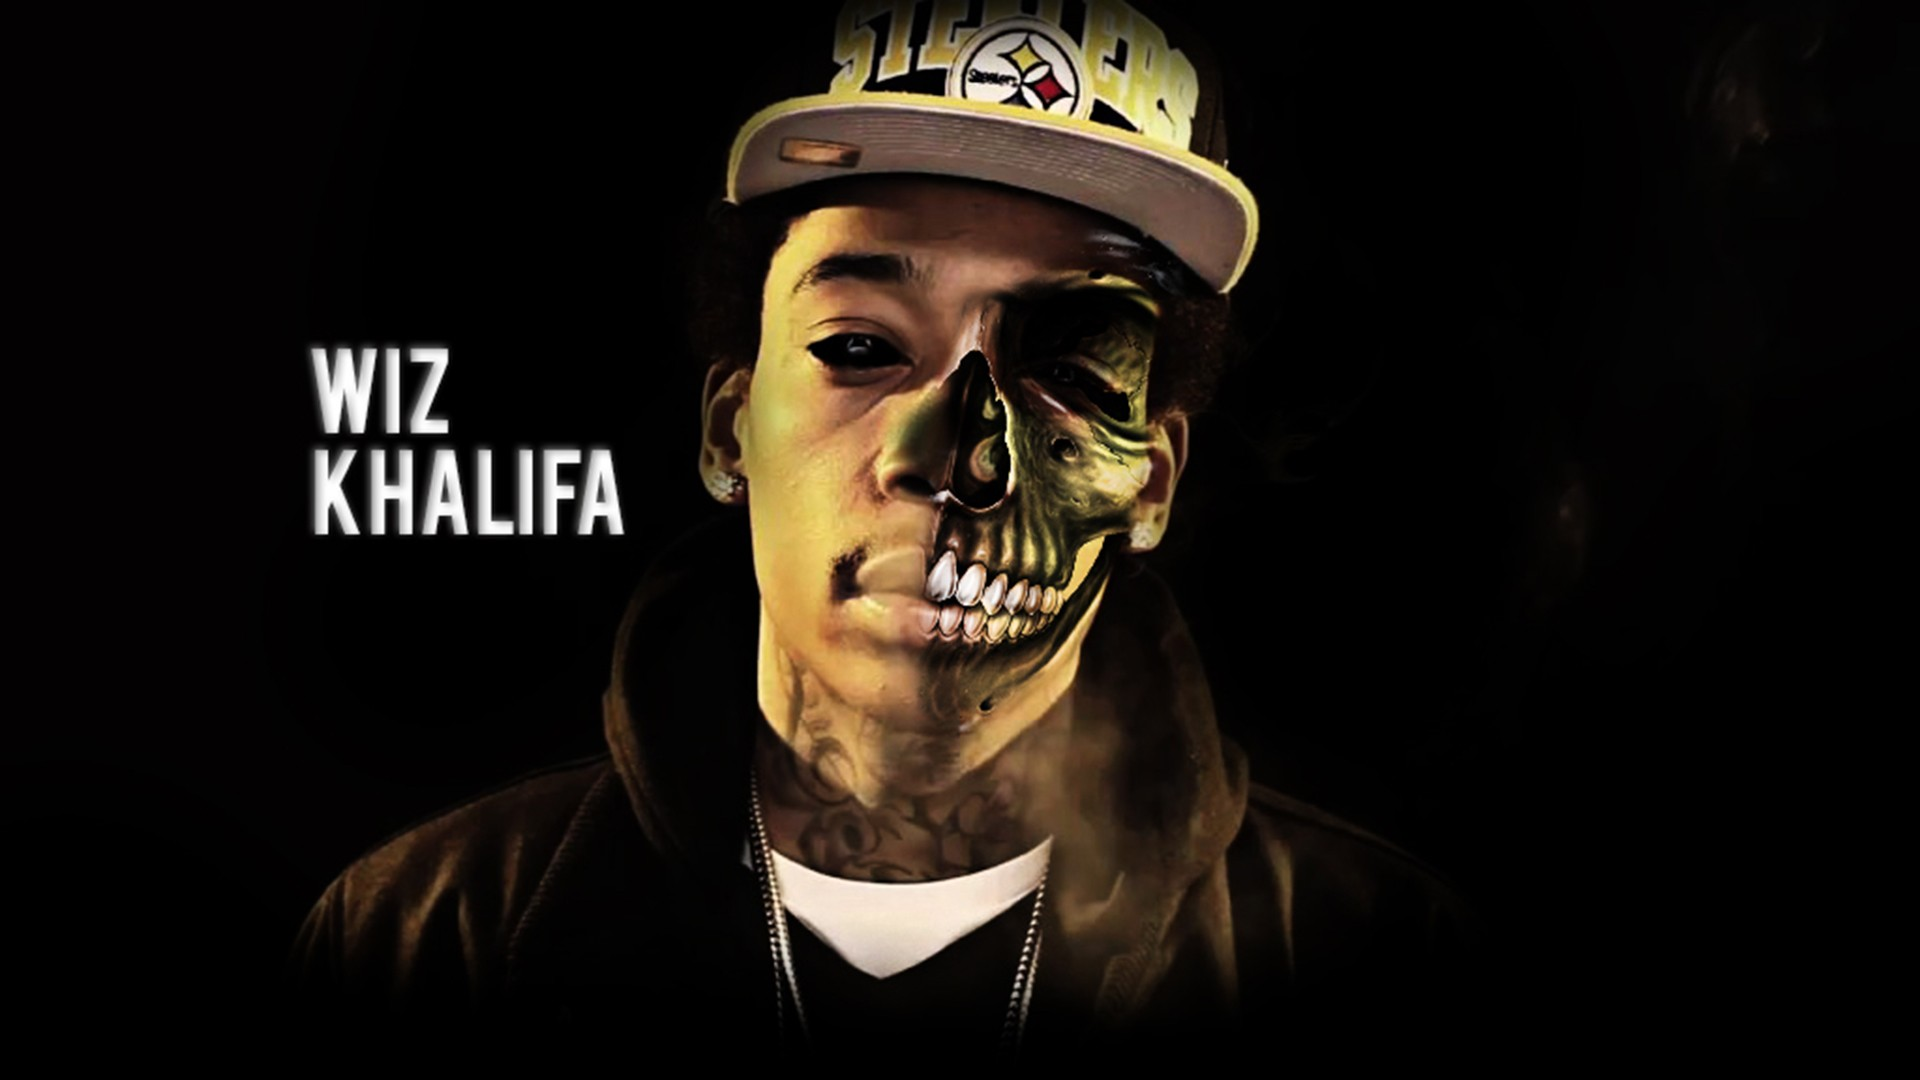 Wiz khalifa wallpapers for iphone 1920x1080